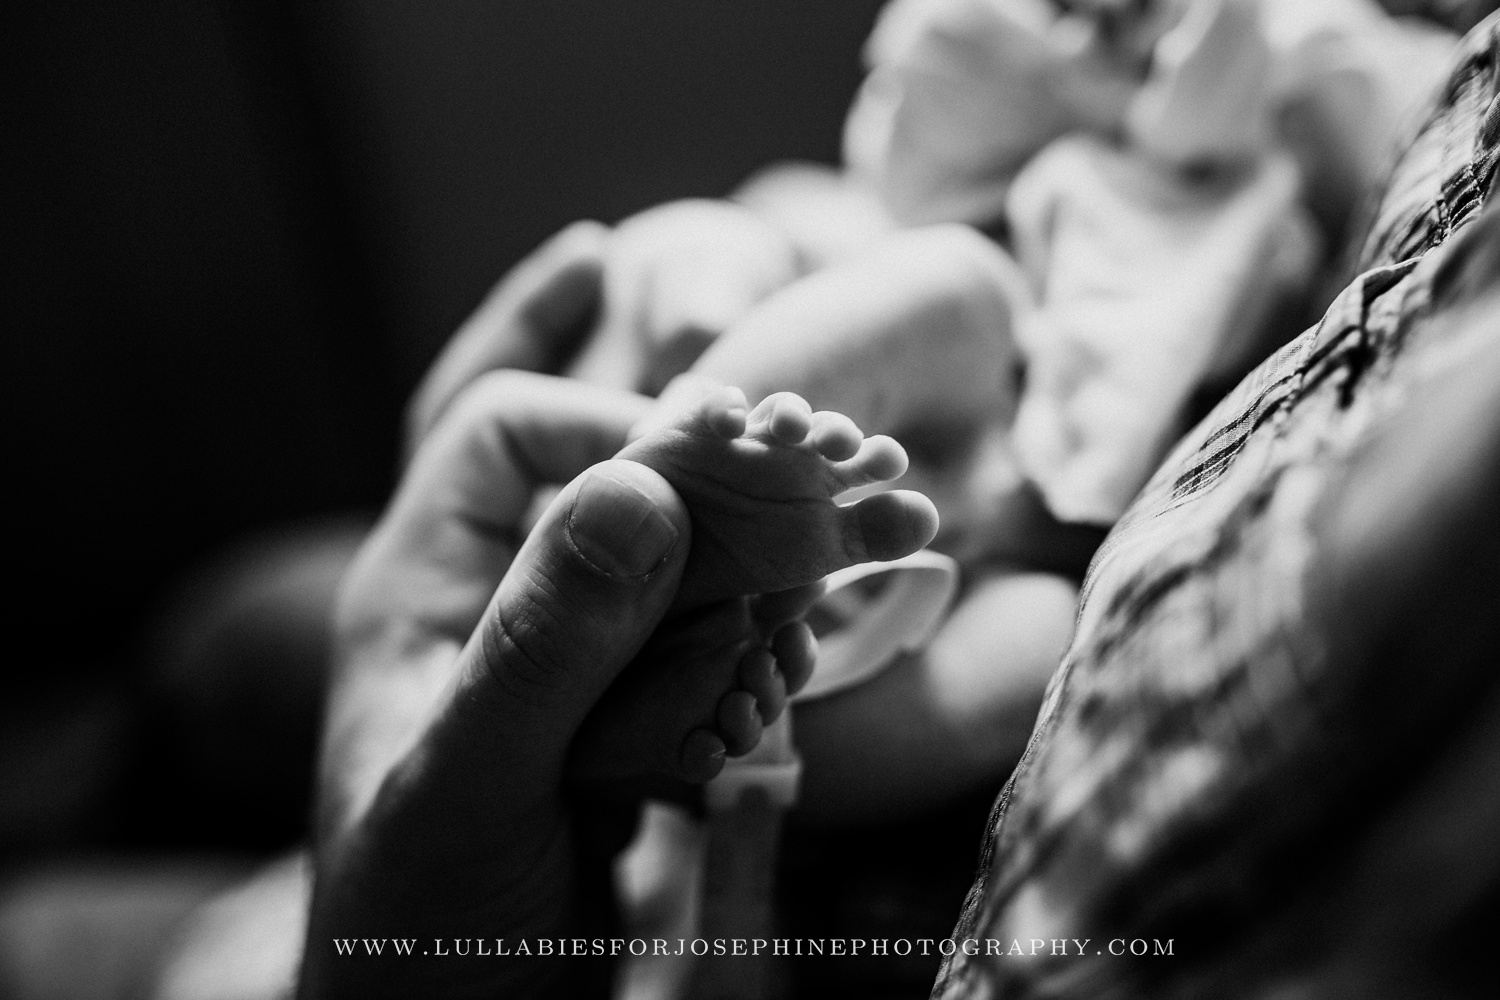 nj-bergen-couty-photographer-newborn-toes-feet-baby-thumb